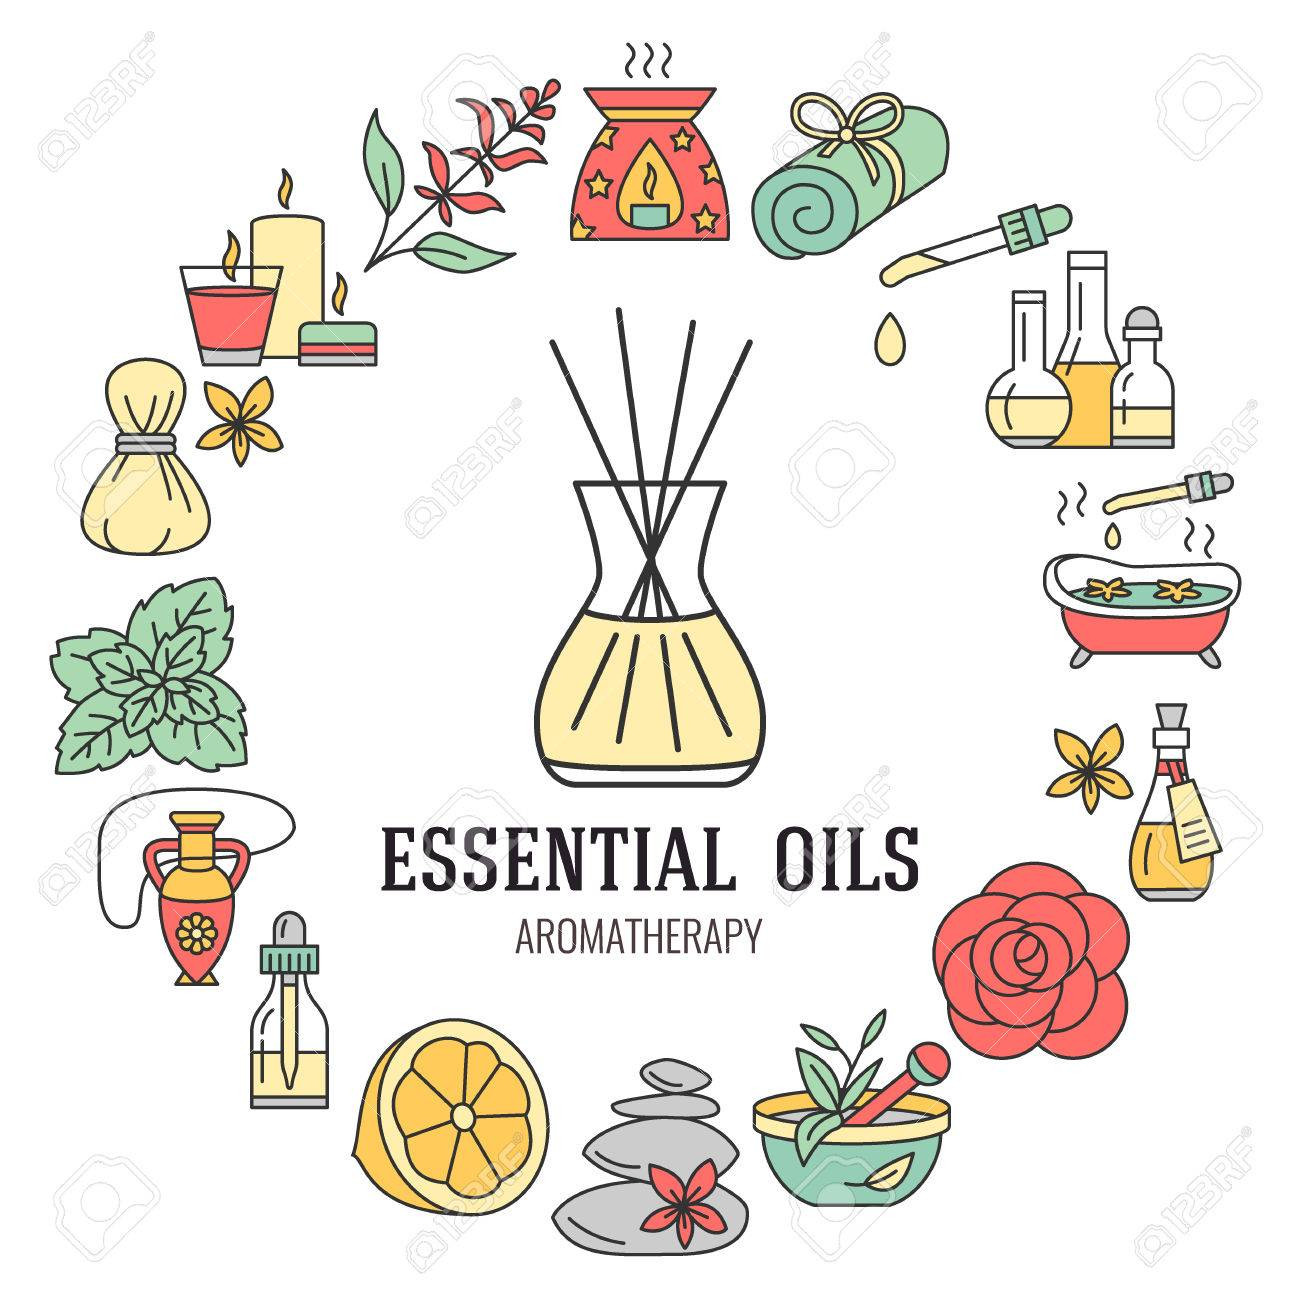 Aromatherapy and essential oils brochure template. Vector line illustration of aromatherapy diffuser, oil burner, spa candles, incense sticks, herbal bag massage. Aromatherapy poster, editable stroke - 66481868